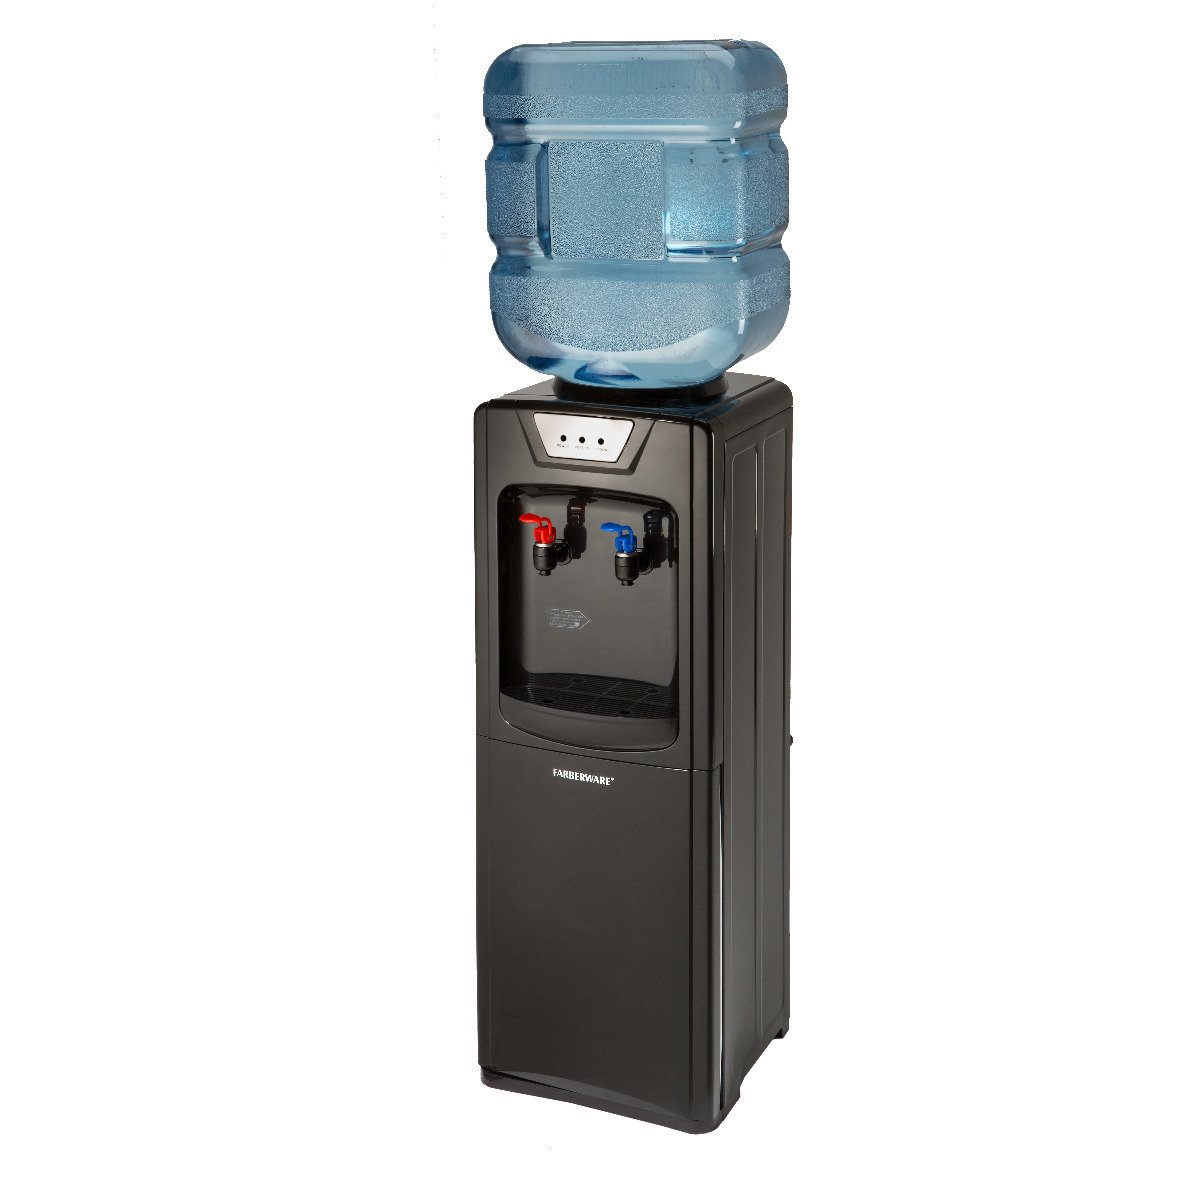 Exceptional Water Cooler Storage #13 - Farberware FW29919 Freestanding Hot And Cold Water Cooler Dispenser, Black  - - Amazon.com